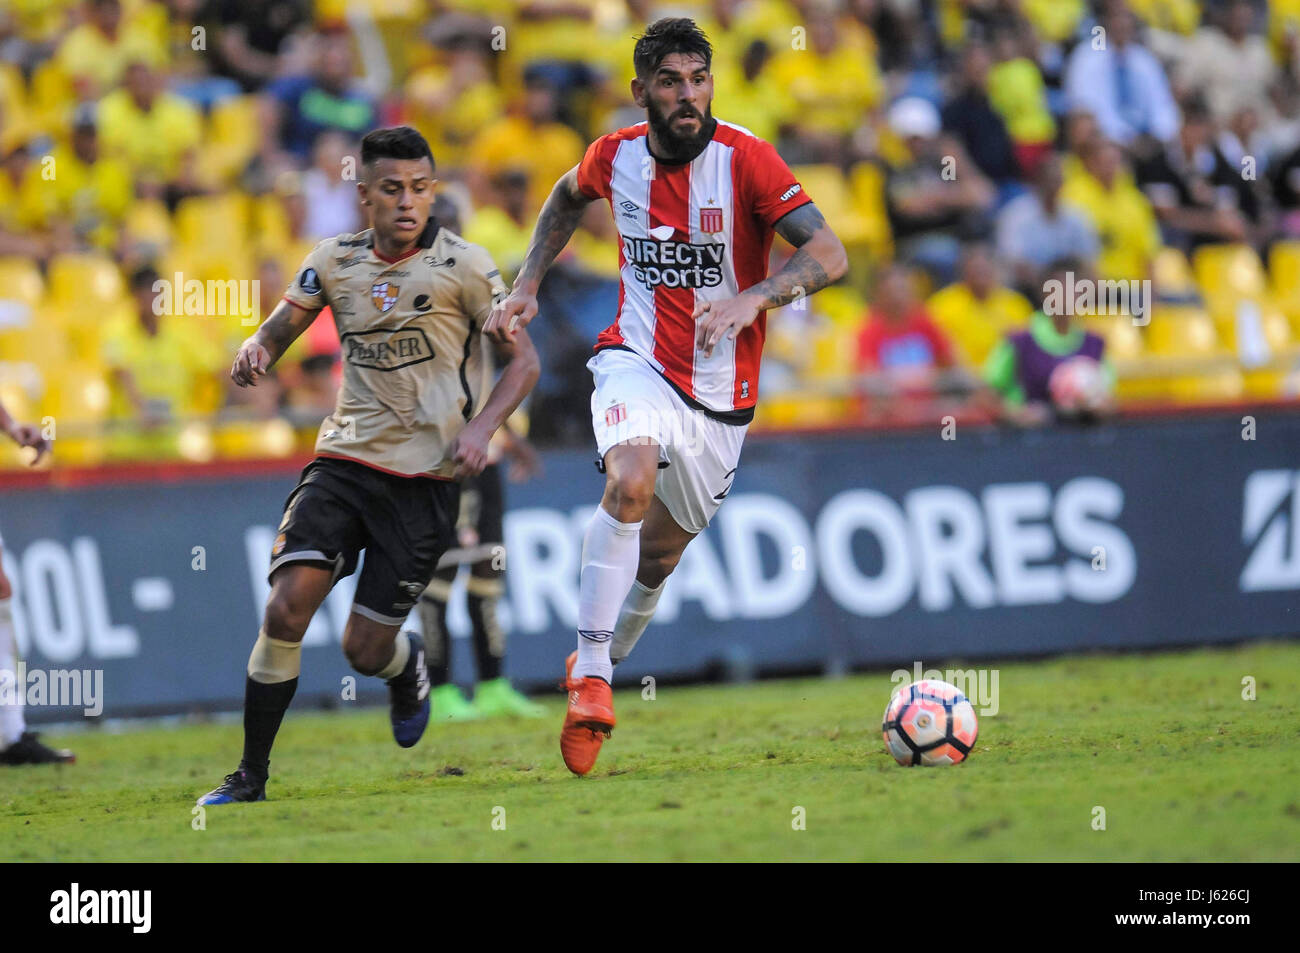 Barcelona Sc S Of Ecuador Richard Calderon L Vies For The Ball Stock Photo Alamy